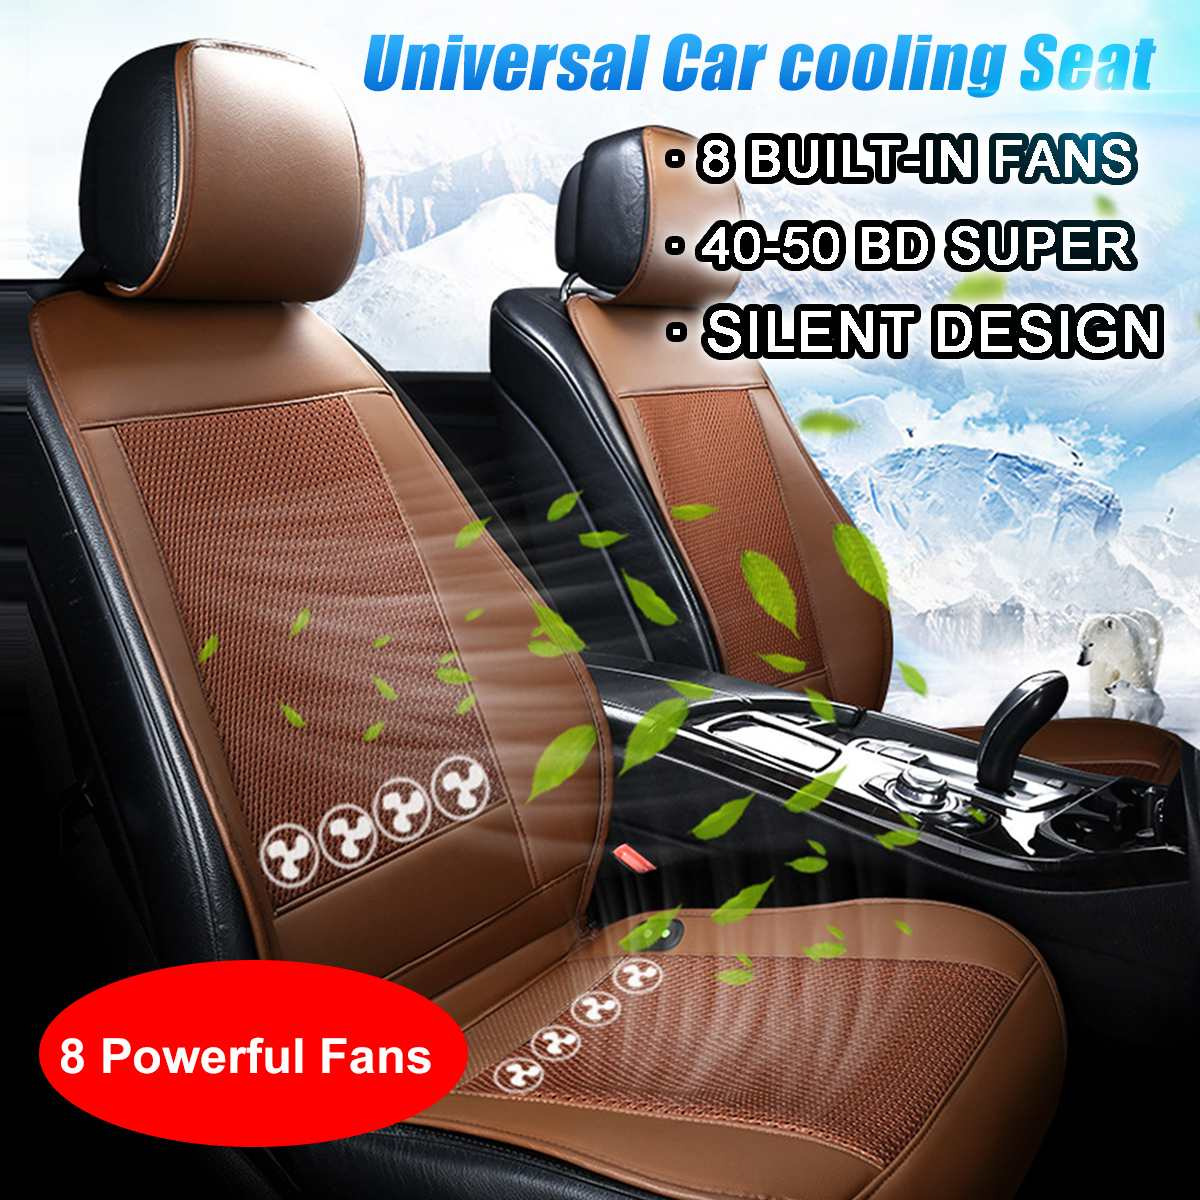 12V Cooling Car Seat Cushion Cover Air Ventilated Fan Conditioned Cooler Pad 8 Built-in Fan 3 Speeds Seat Cushion Covers